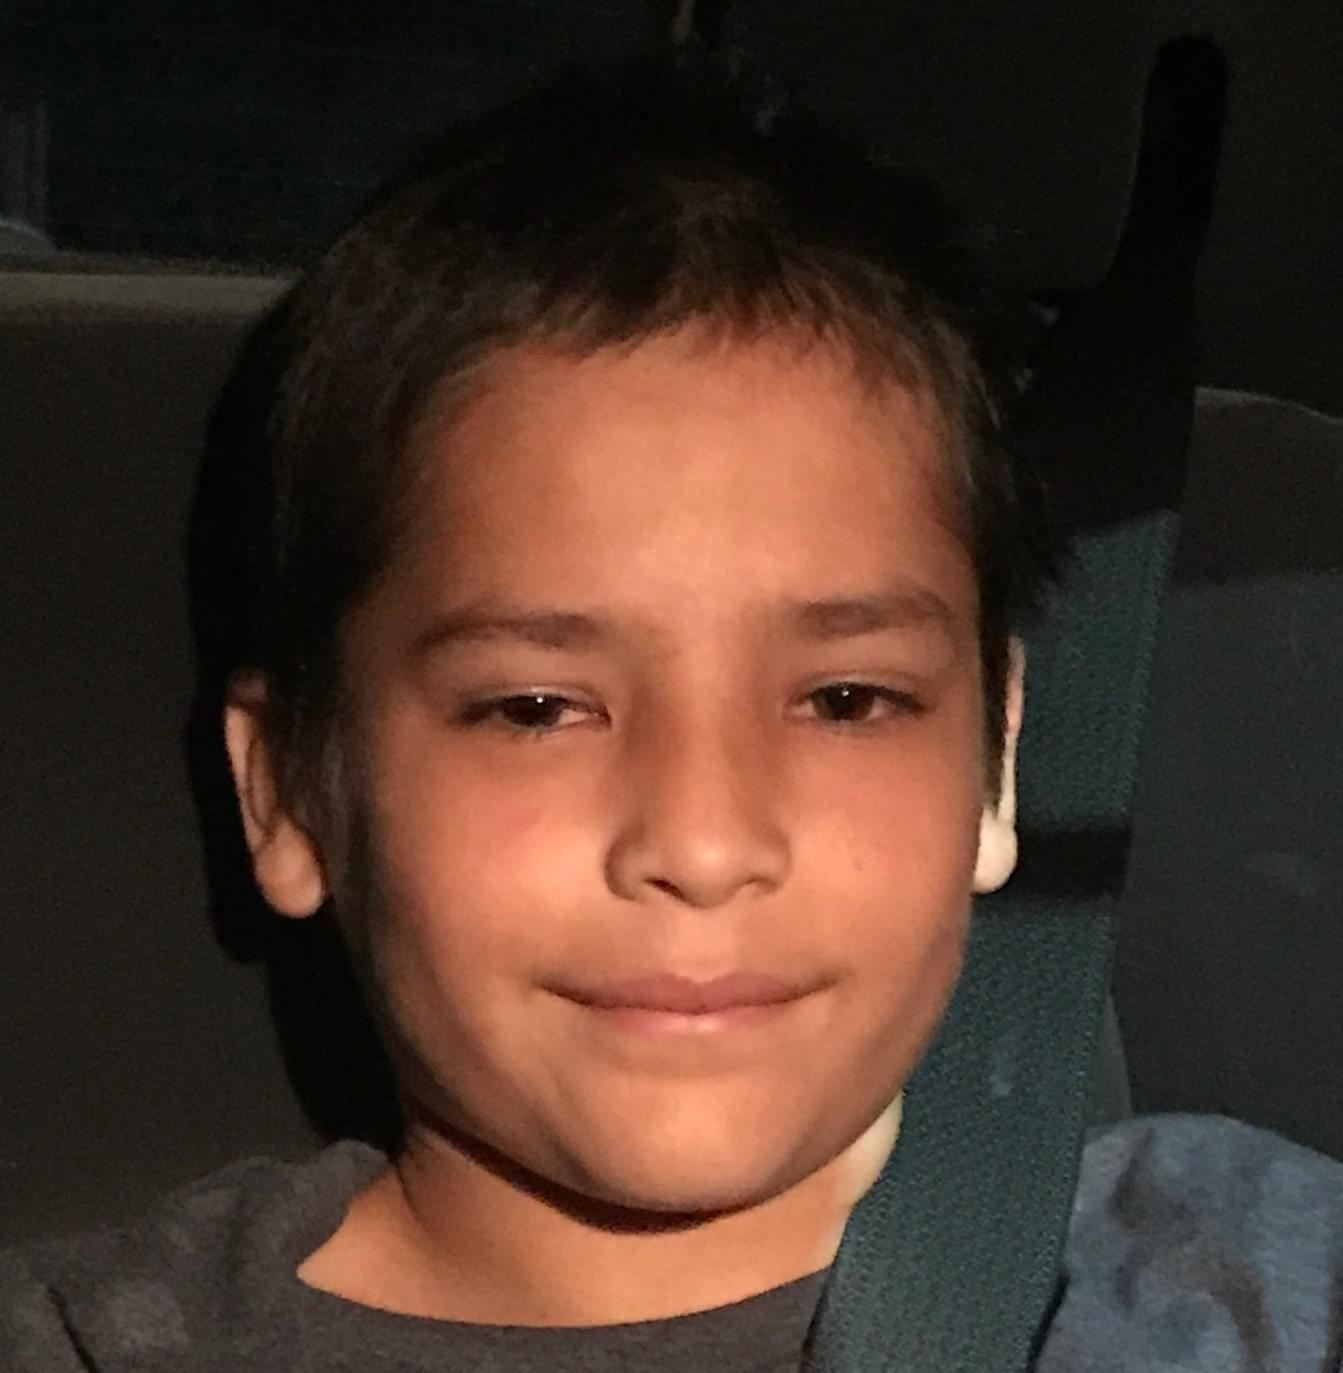 Police ask for help to find missing 13 year old